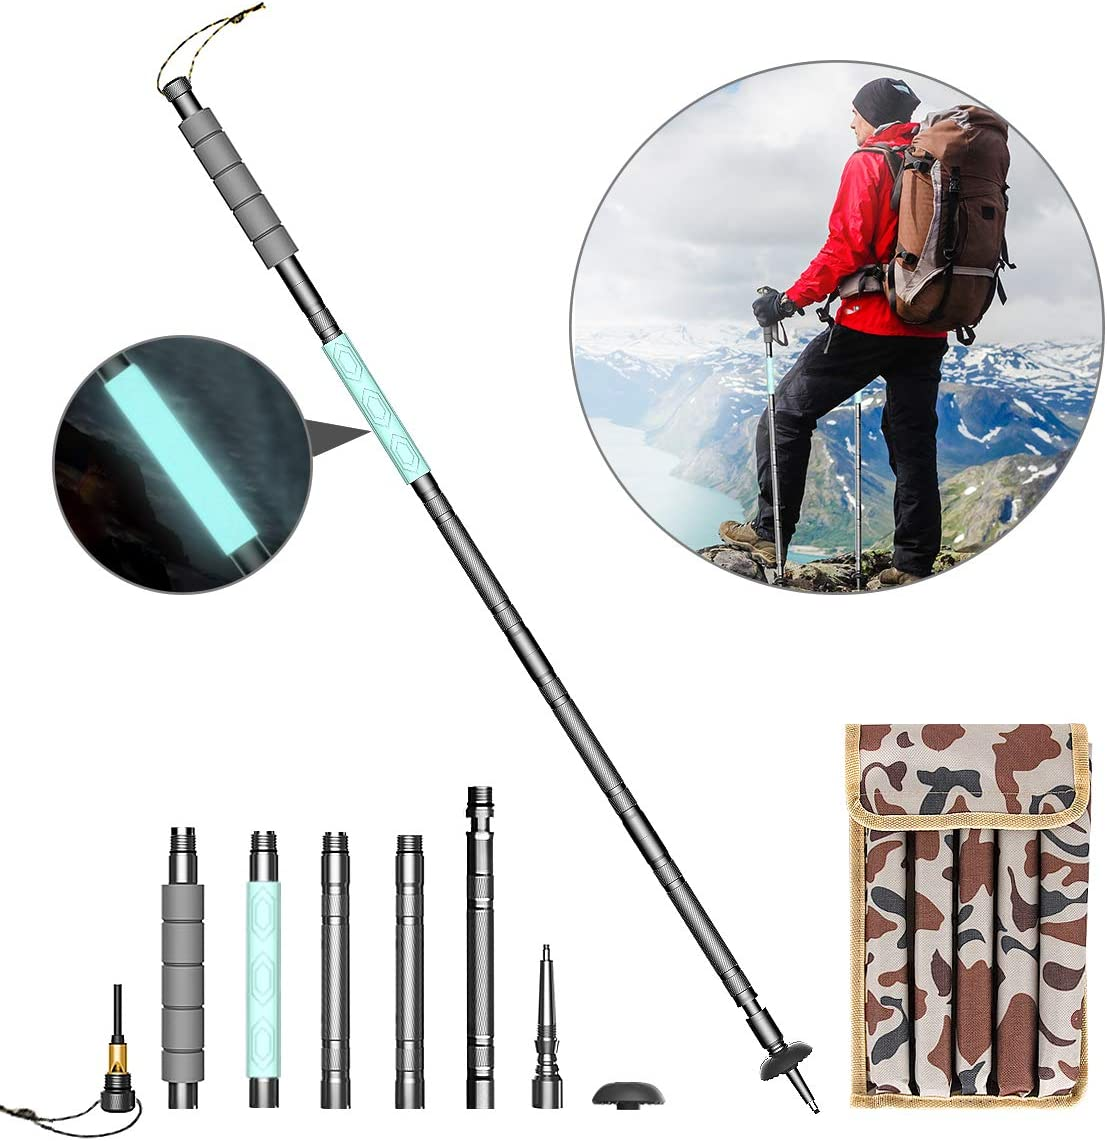 Napasa Multi Function Trekking Poles with Fluorescent Handle Collapsible Lightweight Aluminum Alloy Walking Sticks for Hiking Travel Camping Climbing